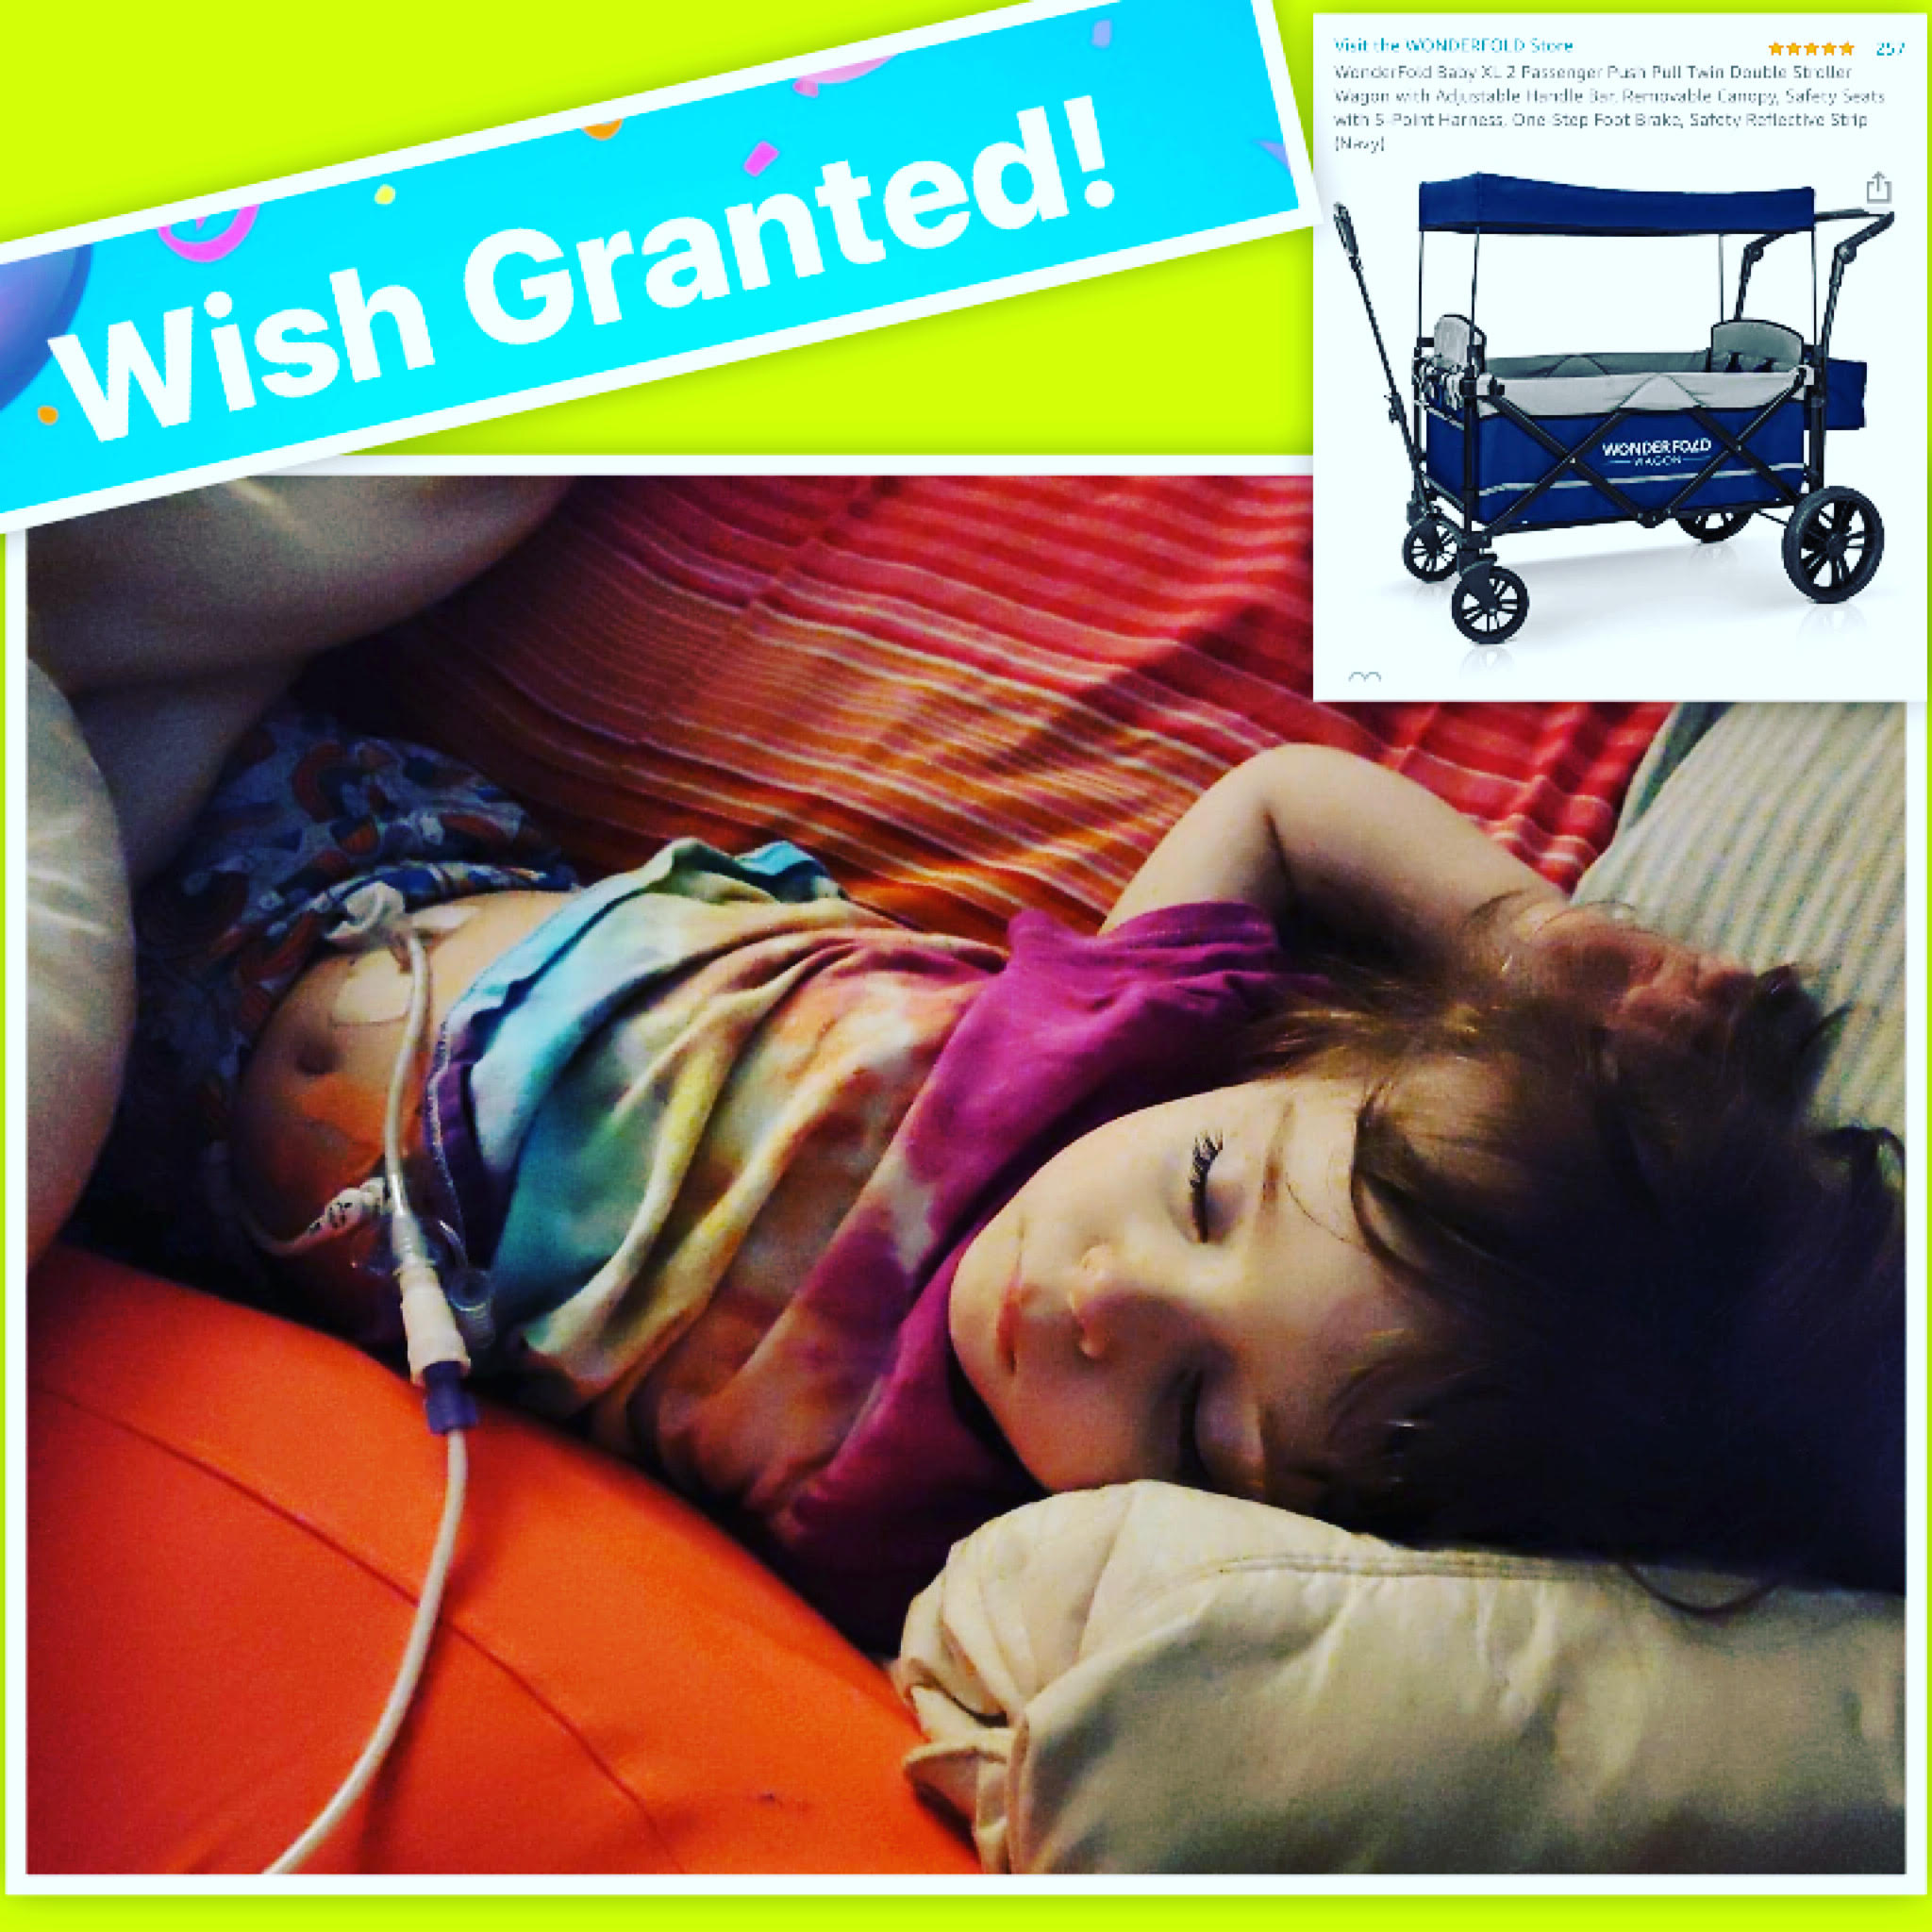 WISH GRANTED for nonverbal child with Cerebral Palsy so she can experience the outdoors for the very first time.